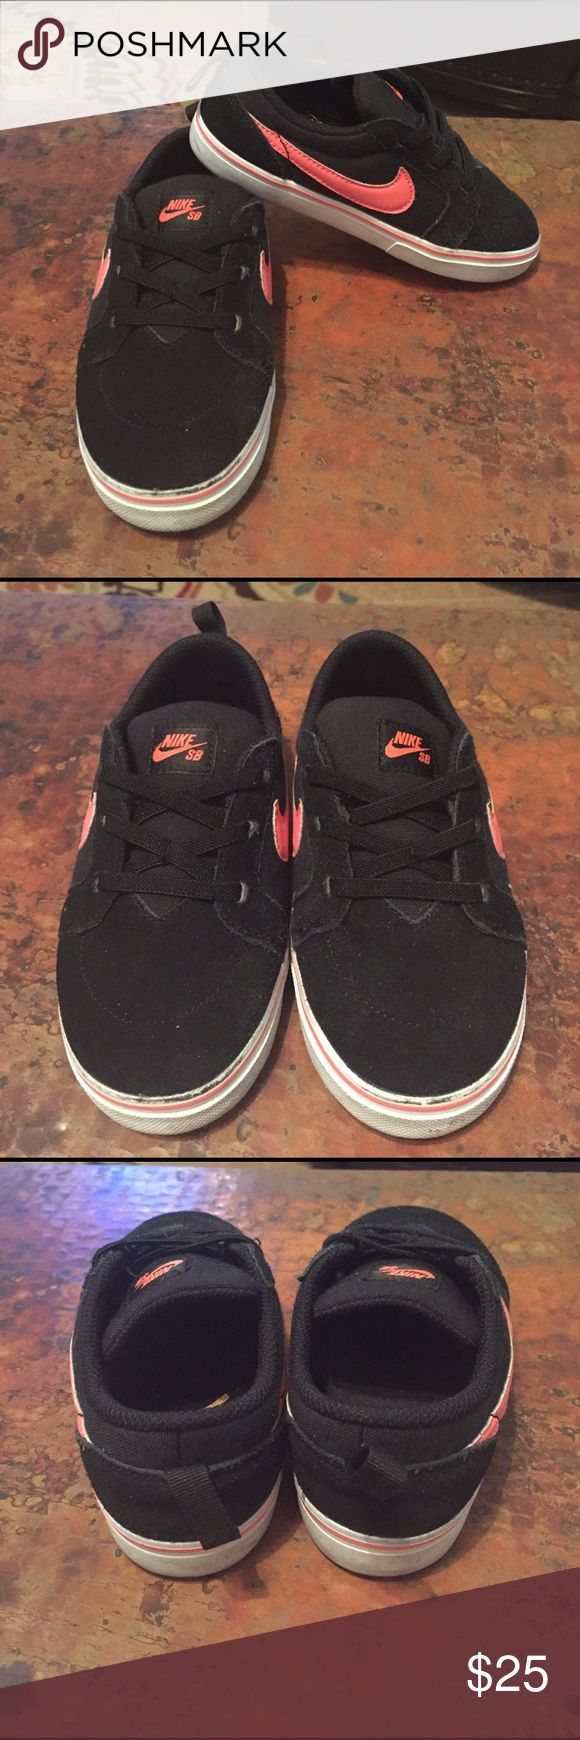 Girls Nike shoes size ten Darling pair of girls Nike shoes. Black with orange swoosh. Worn once. See pic for exact condition. From clean pet and smoke free home Nike Shoes